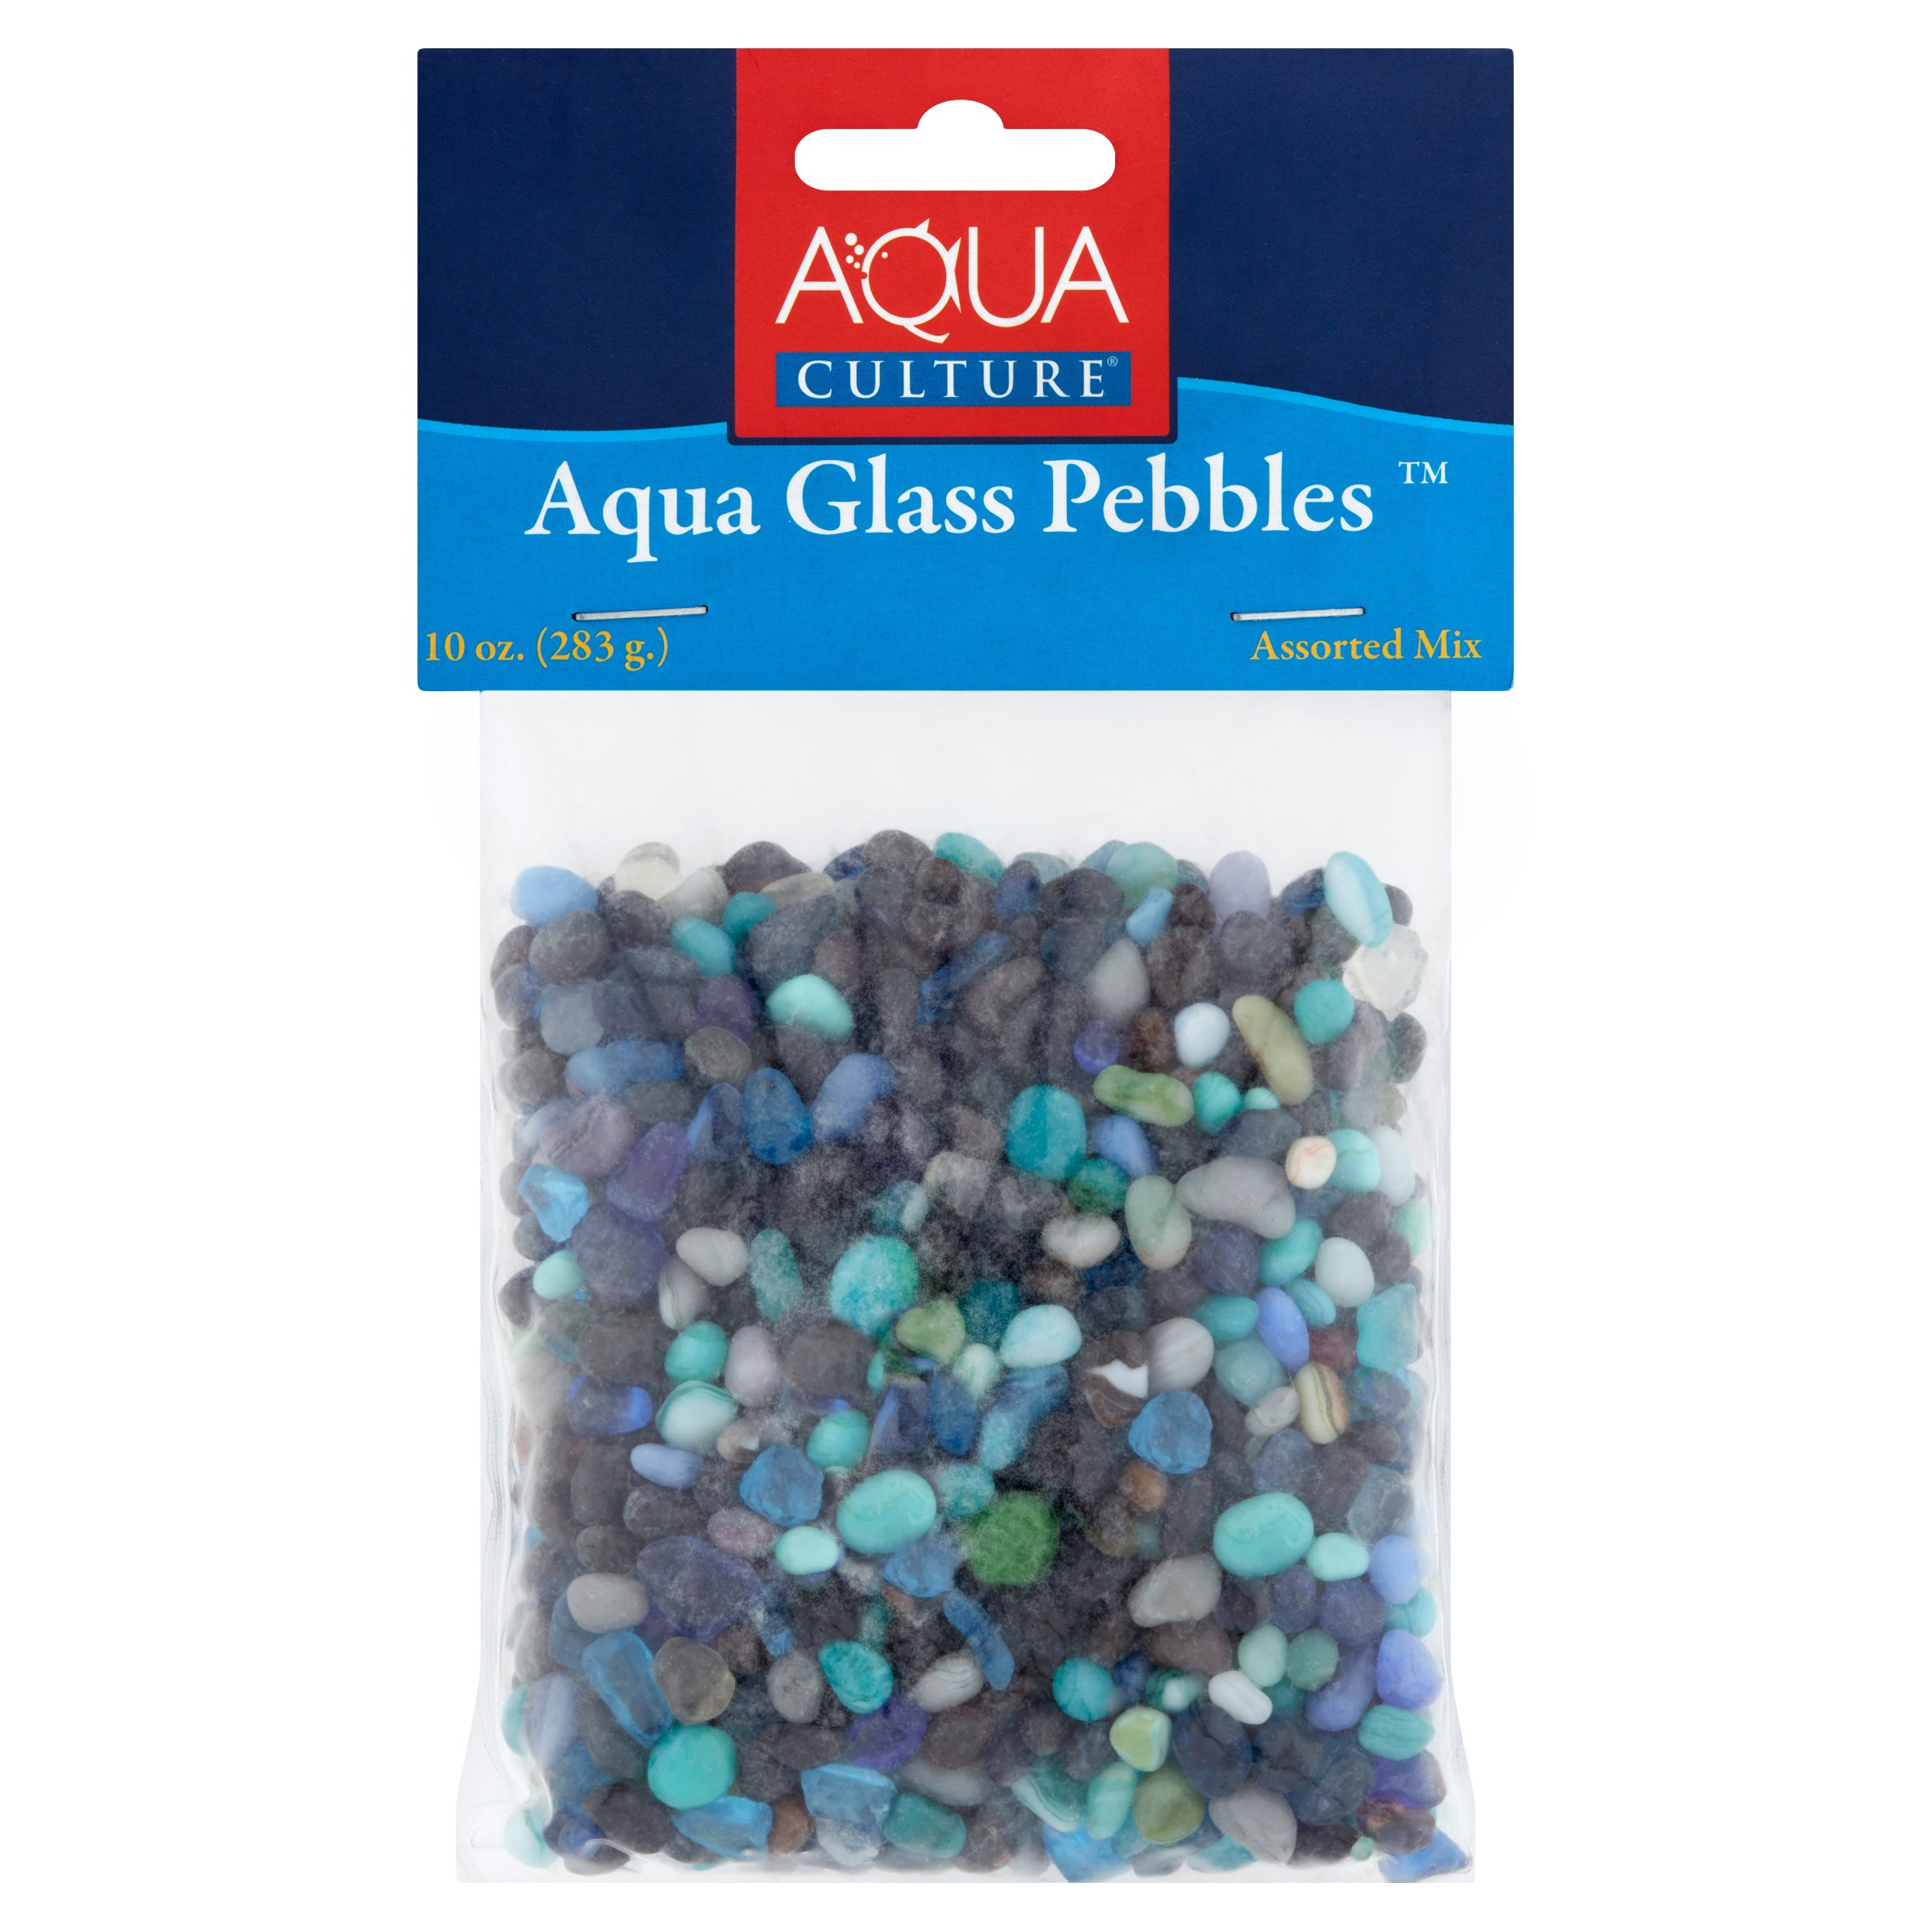 Aqua Culture Assorted Mix Aqua Glass Fish Tank Febbles, 10-Ounce